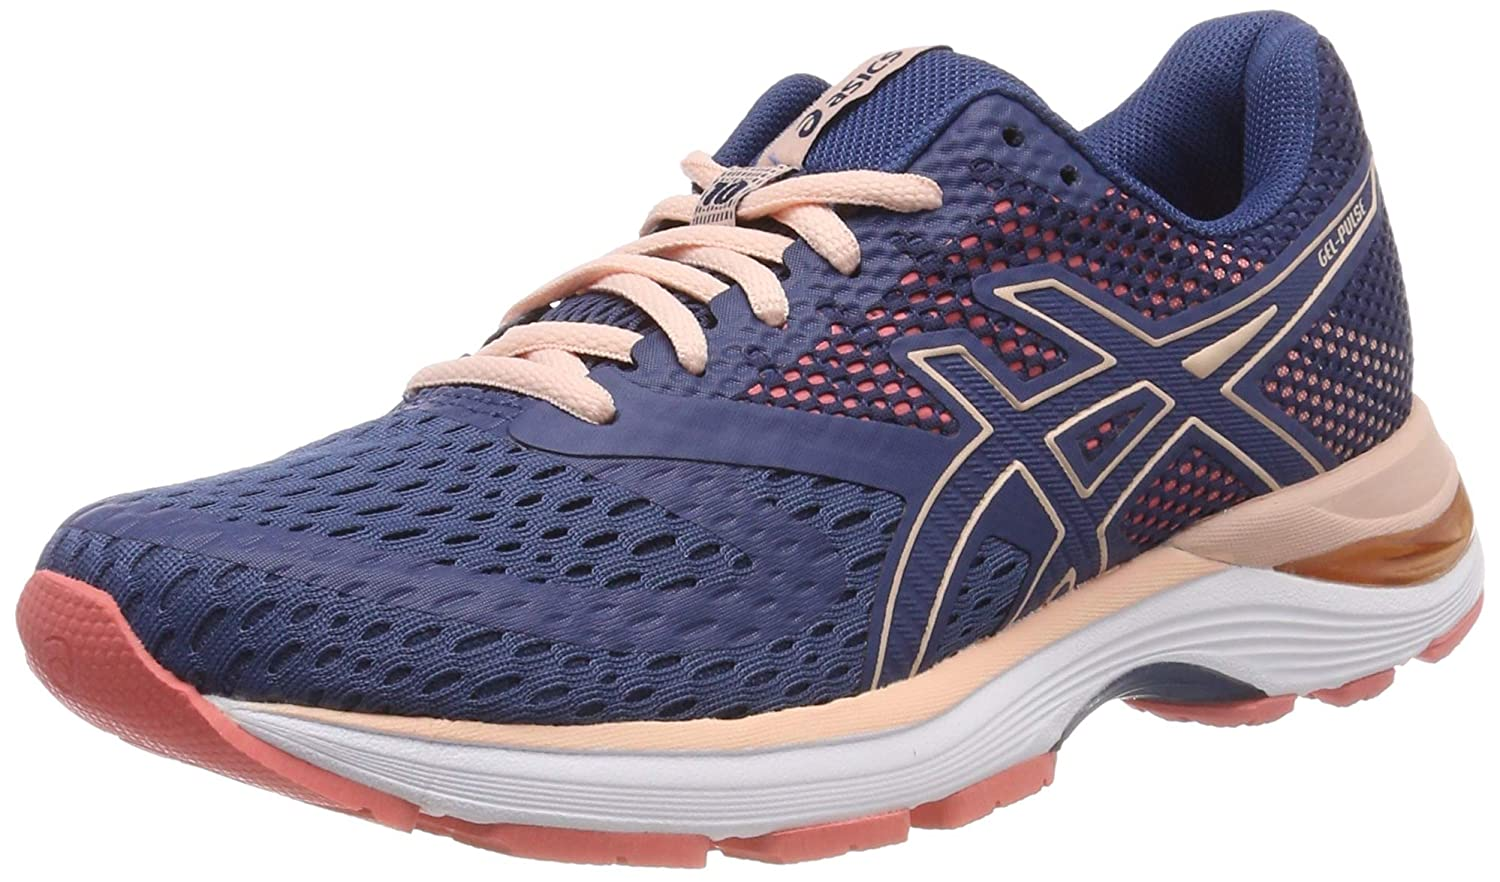 4f45dfa4b447 ASICS Women s Gel-Pulse 10 Running Shoes Blue  Amazon.co.uk  Shoes   Bags